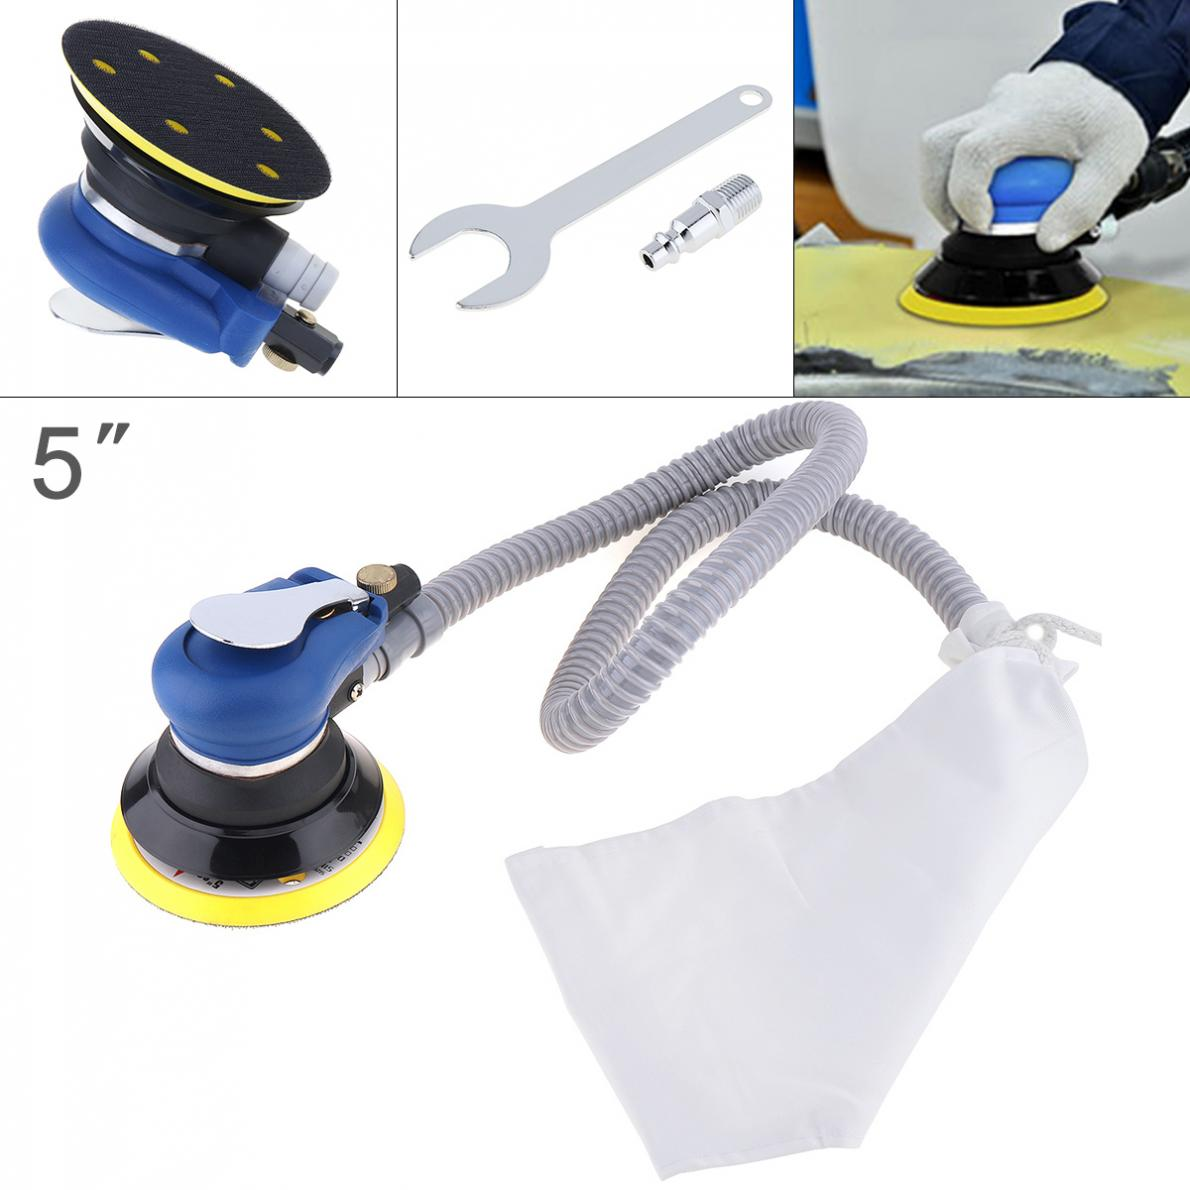 5 Inch 10000RPM Self-vacuuming Pneumatic Sander Machine With 1m Air Tube And 6-hole Matte Surface Polishing Sanding Pad